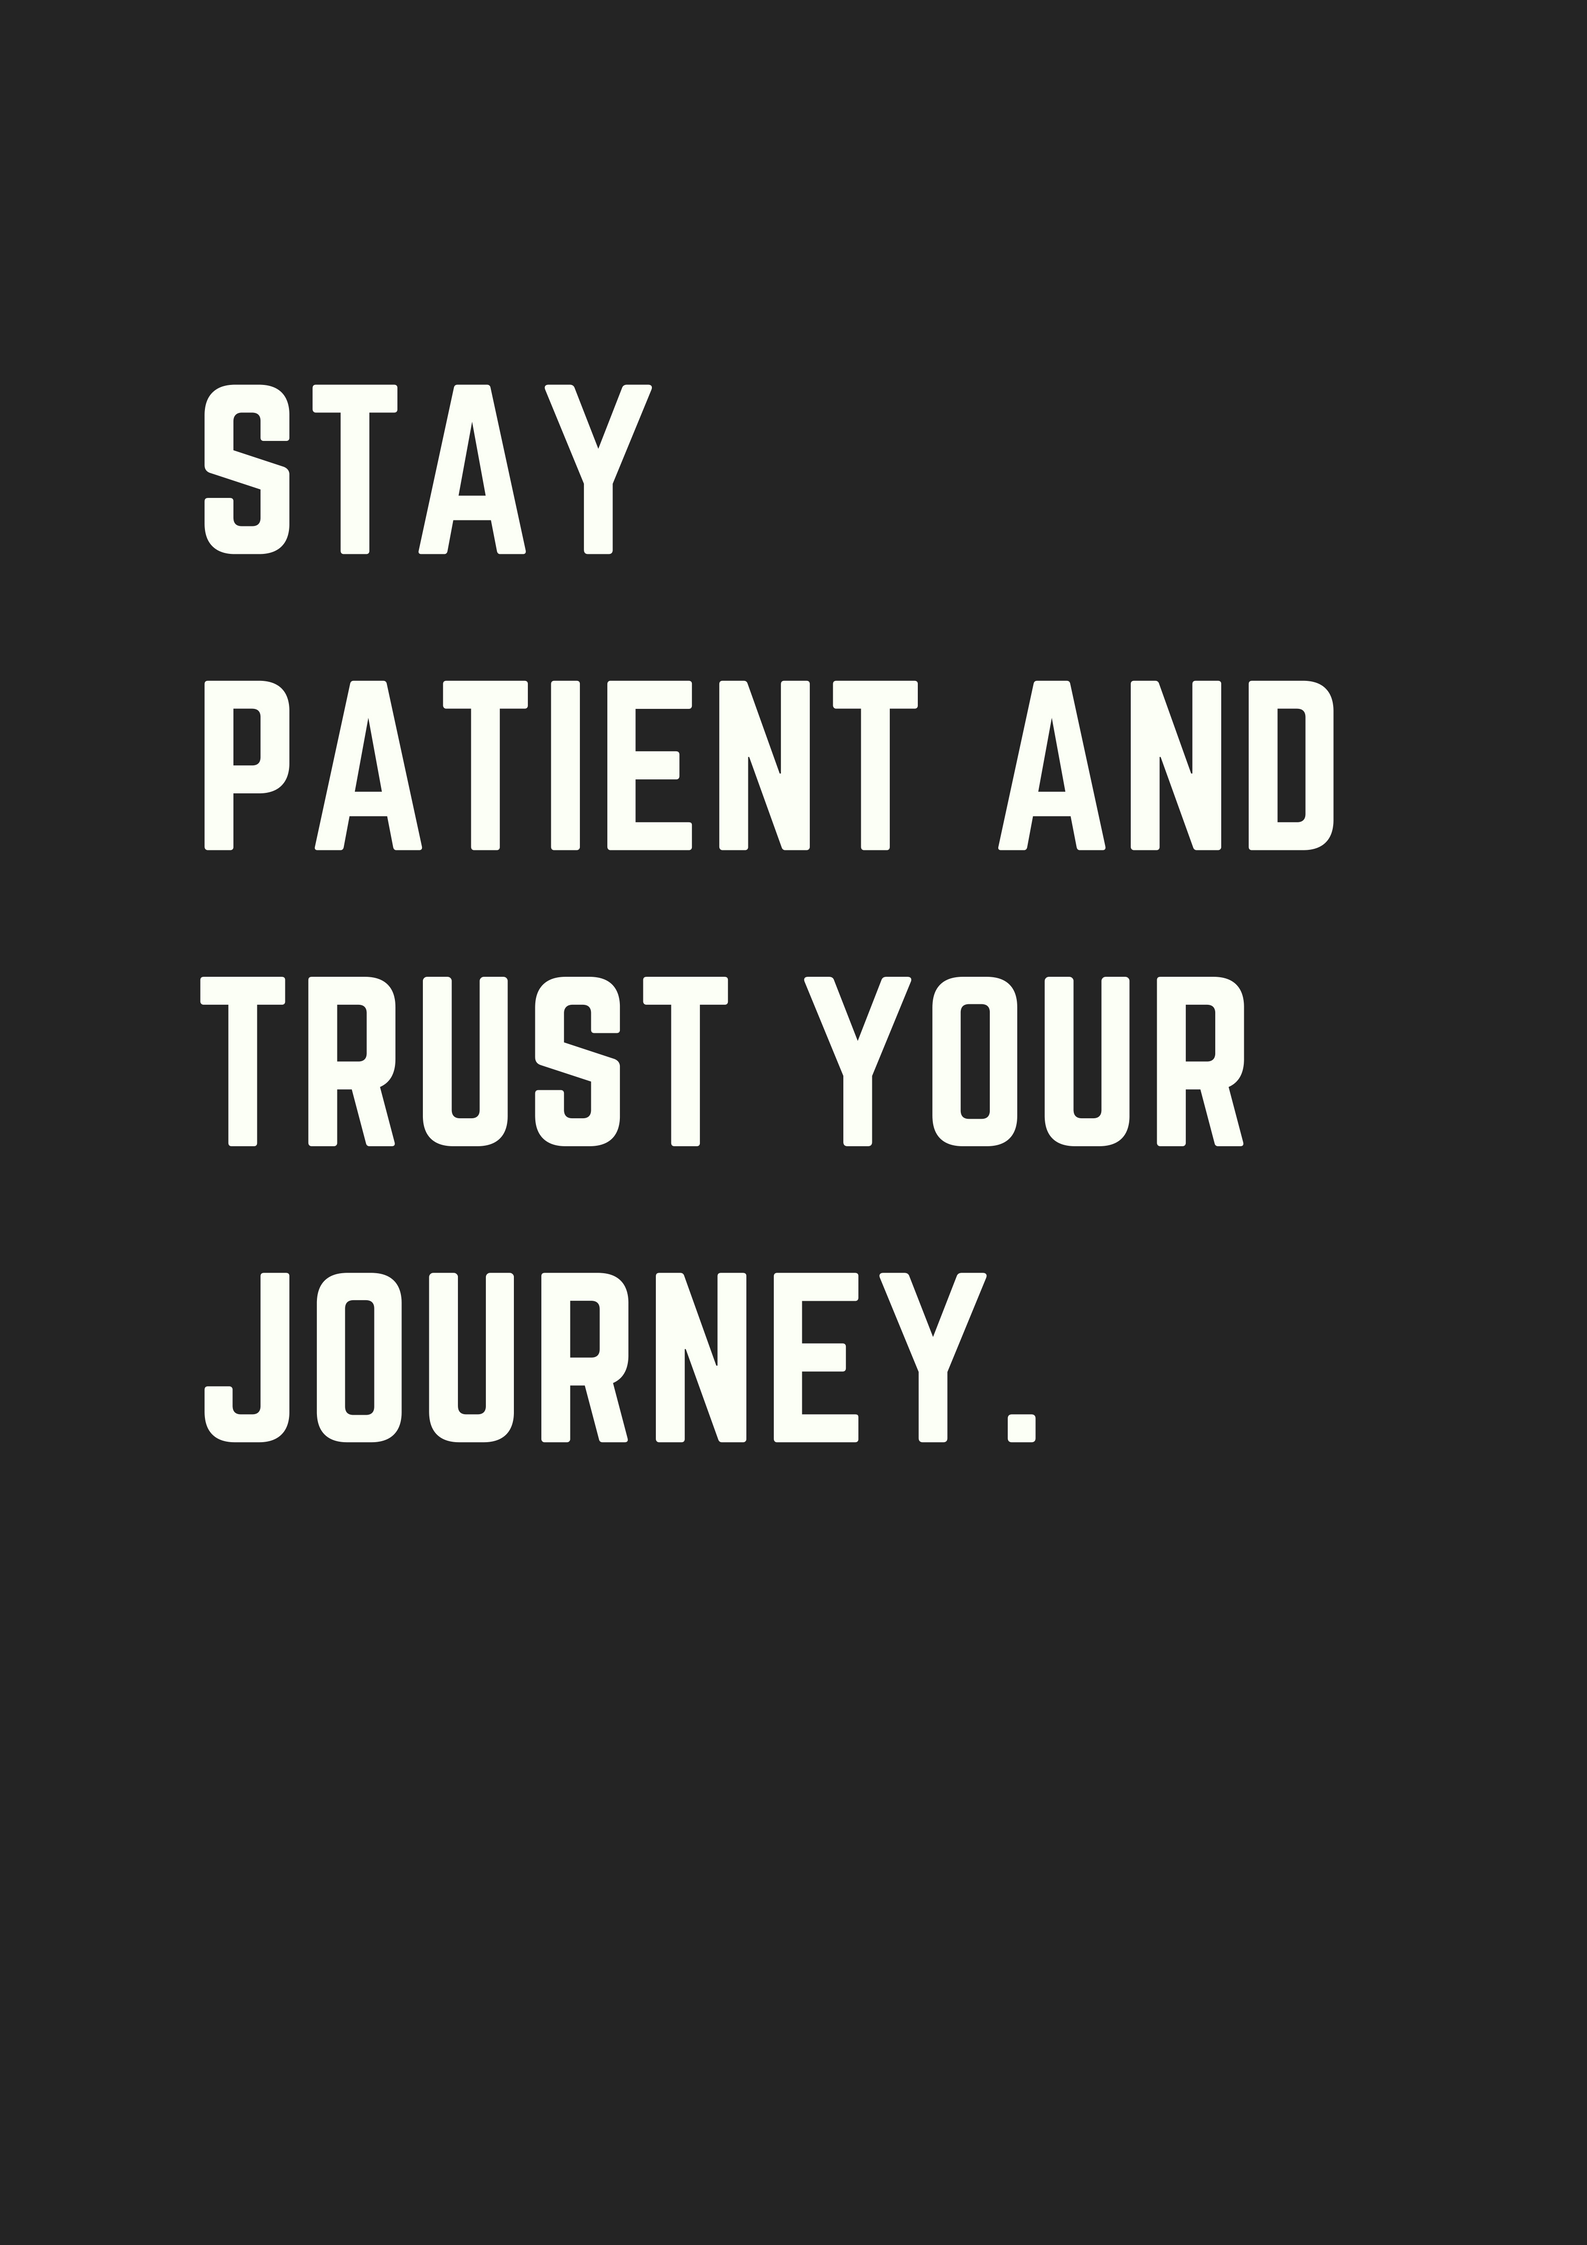 Top 30 Black White Inspirational Quotes Go For It Quotes Quotes About Strength In Hard Times Quotes About Strength